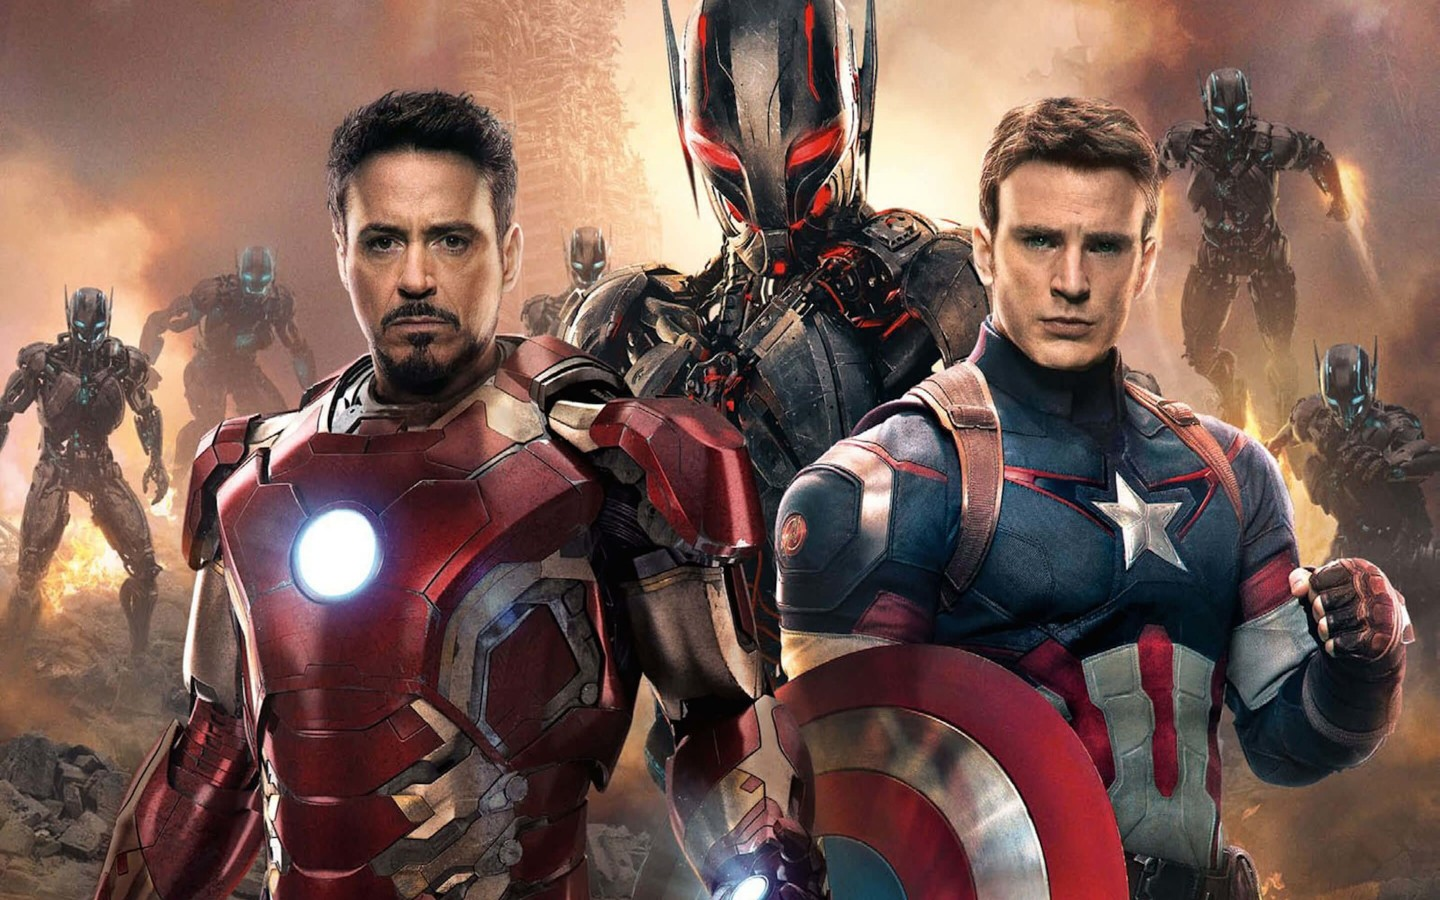 The Avengers: Age of Ultron - Iron Man and Captain America Wallpaper for Desktop 1440x900